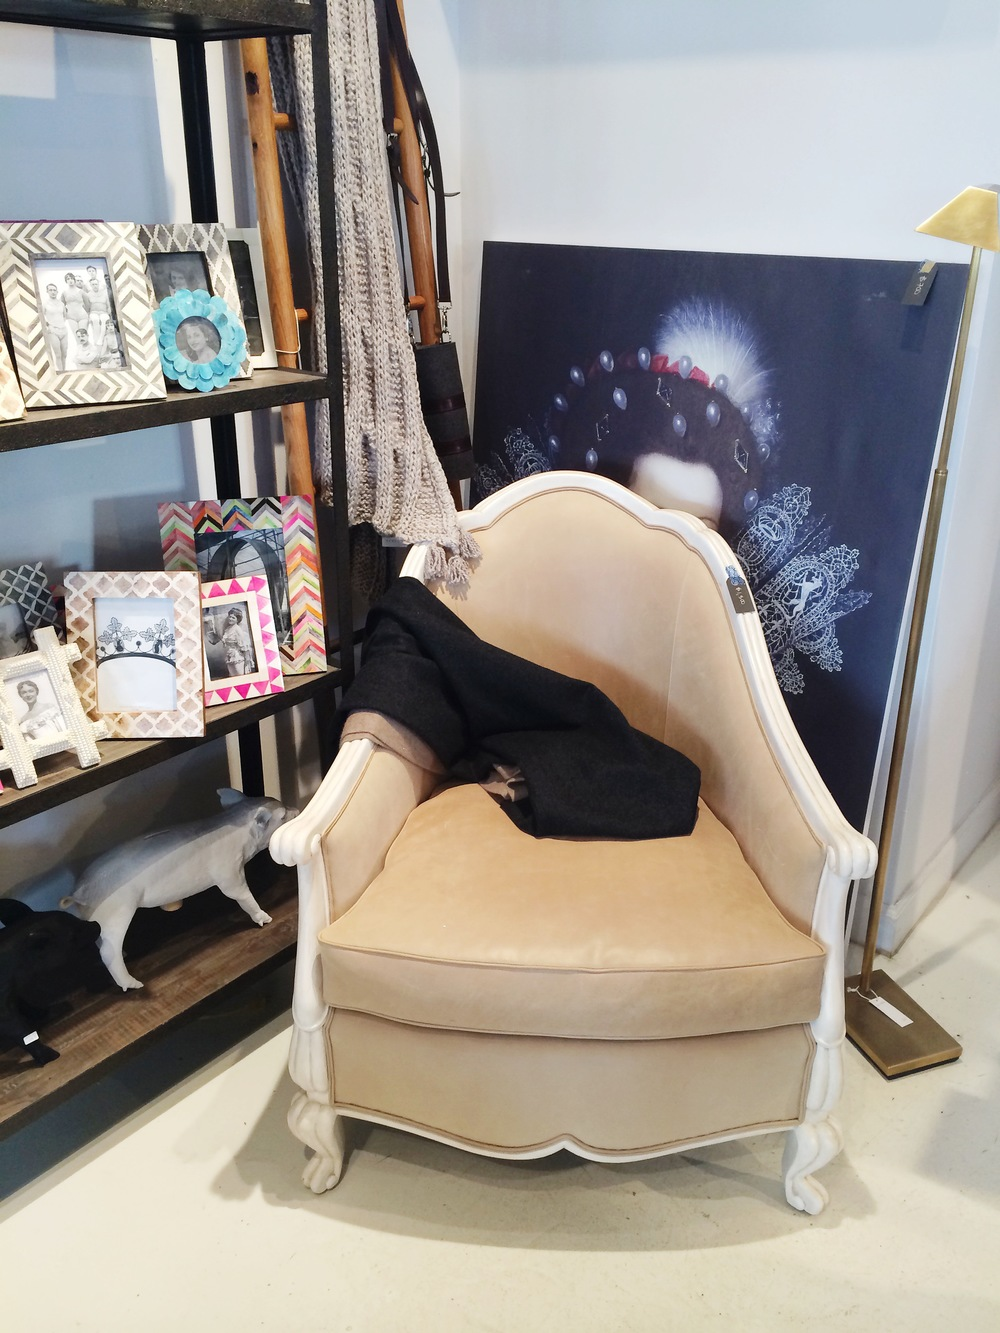 Oly Creamy Leather Belle Chair: was $3,550, now $1500